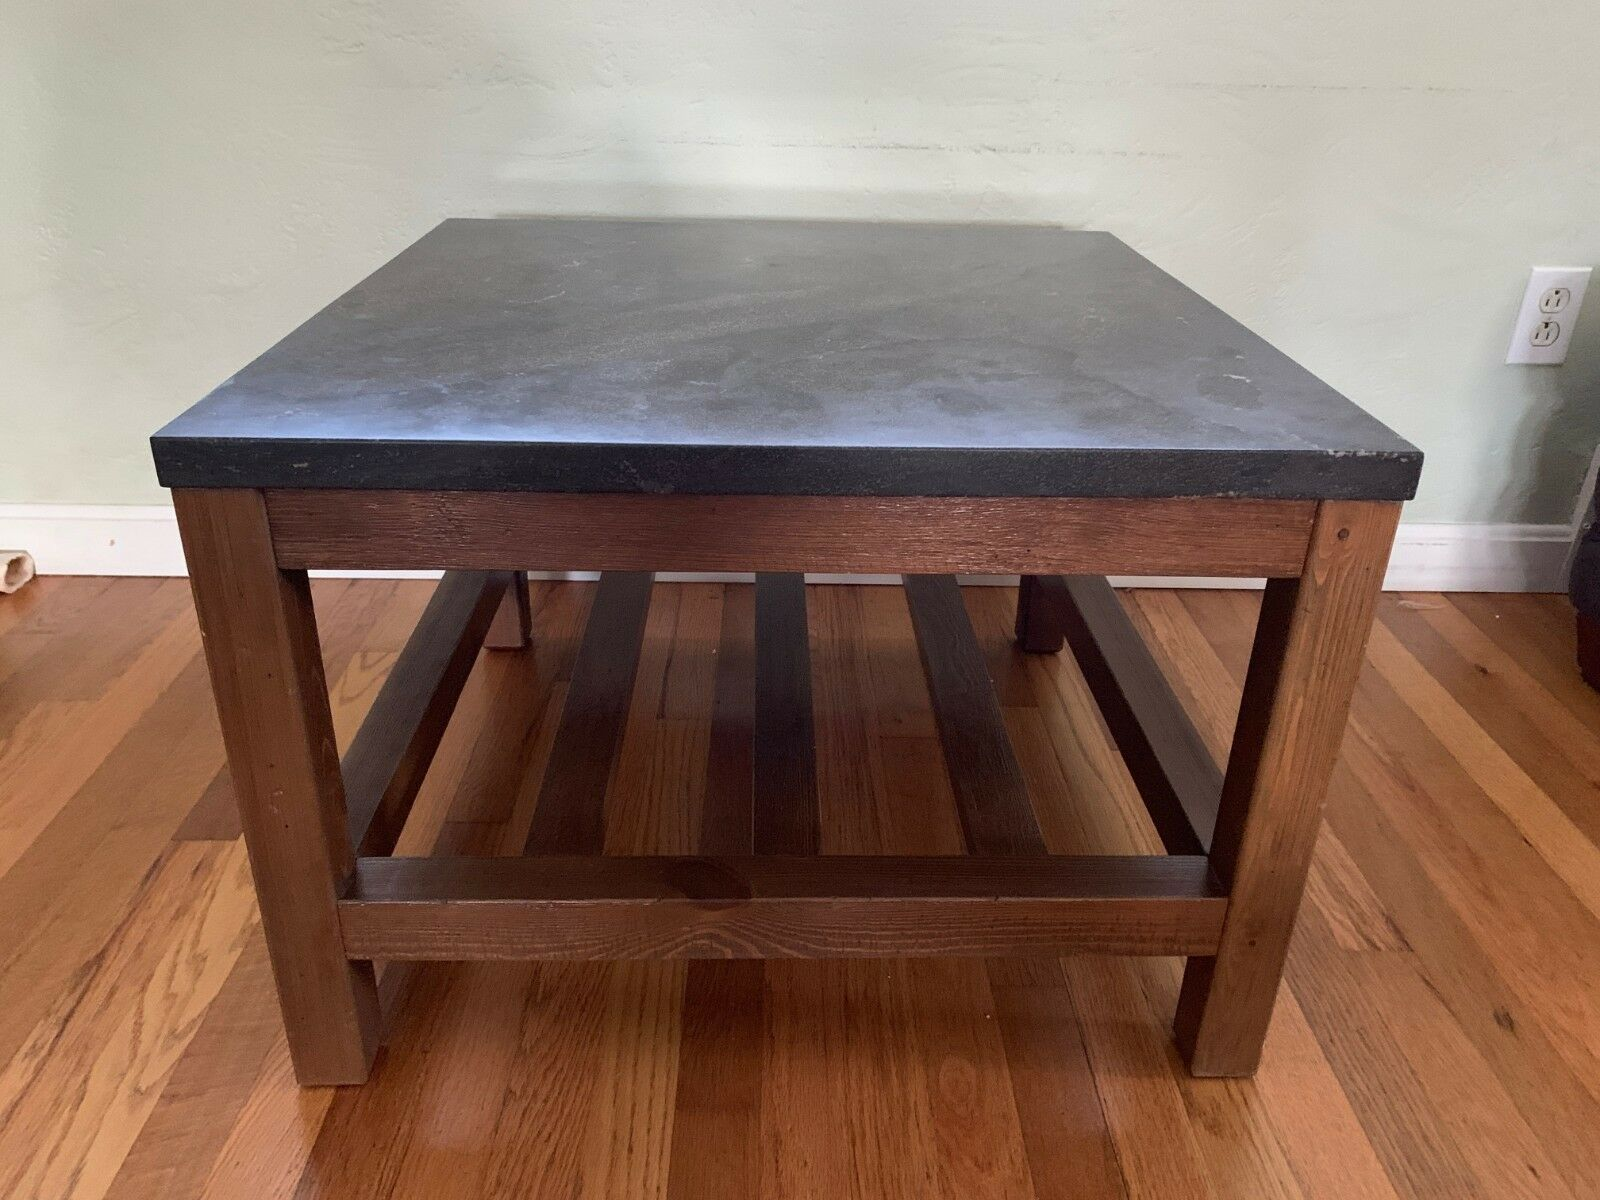 Benzara Ritzy Marble Top Square Coffee Table For Sale Online Ebay